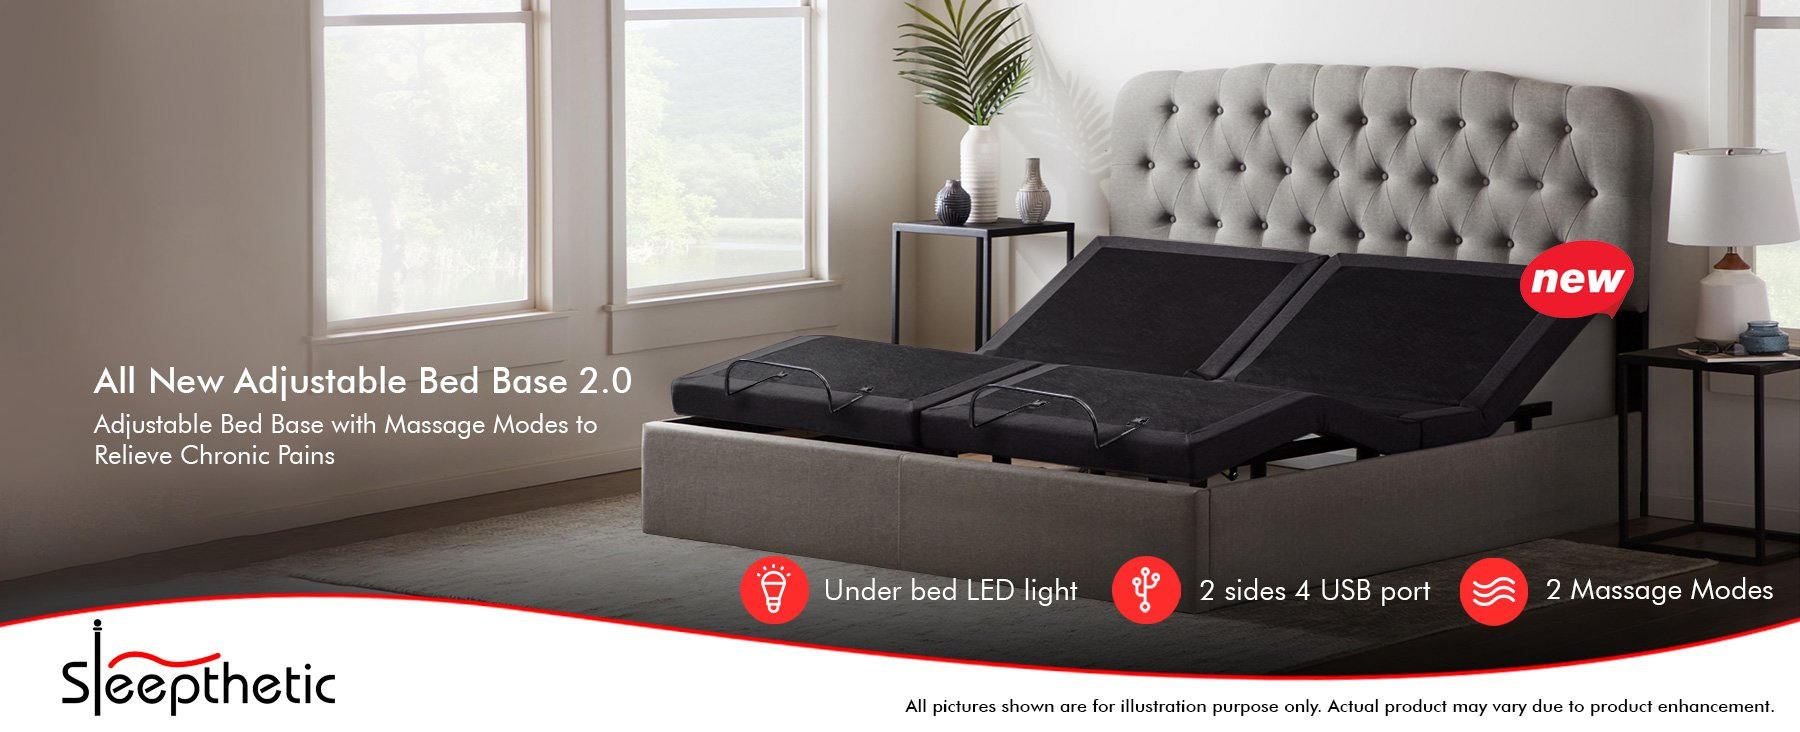 Sleepthetic™ Adjustable Bed Base